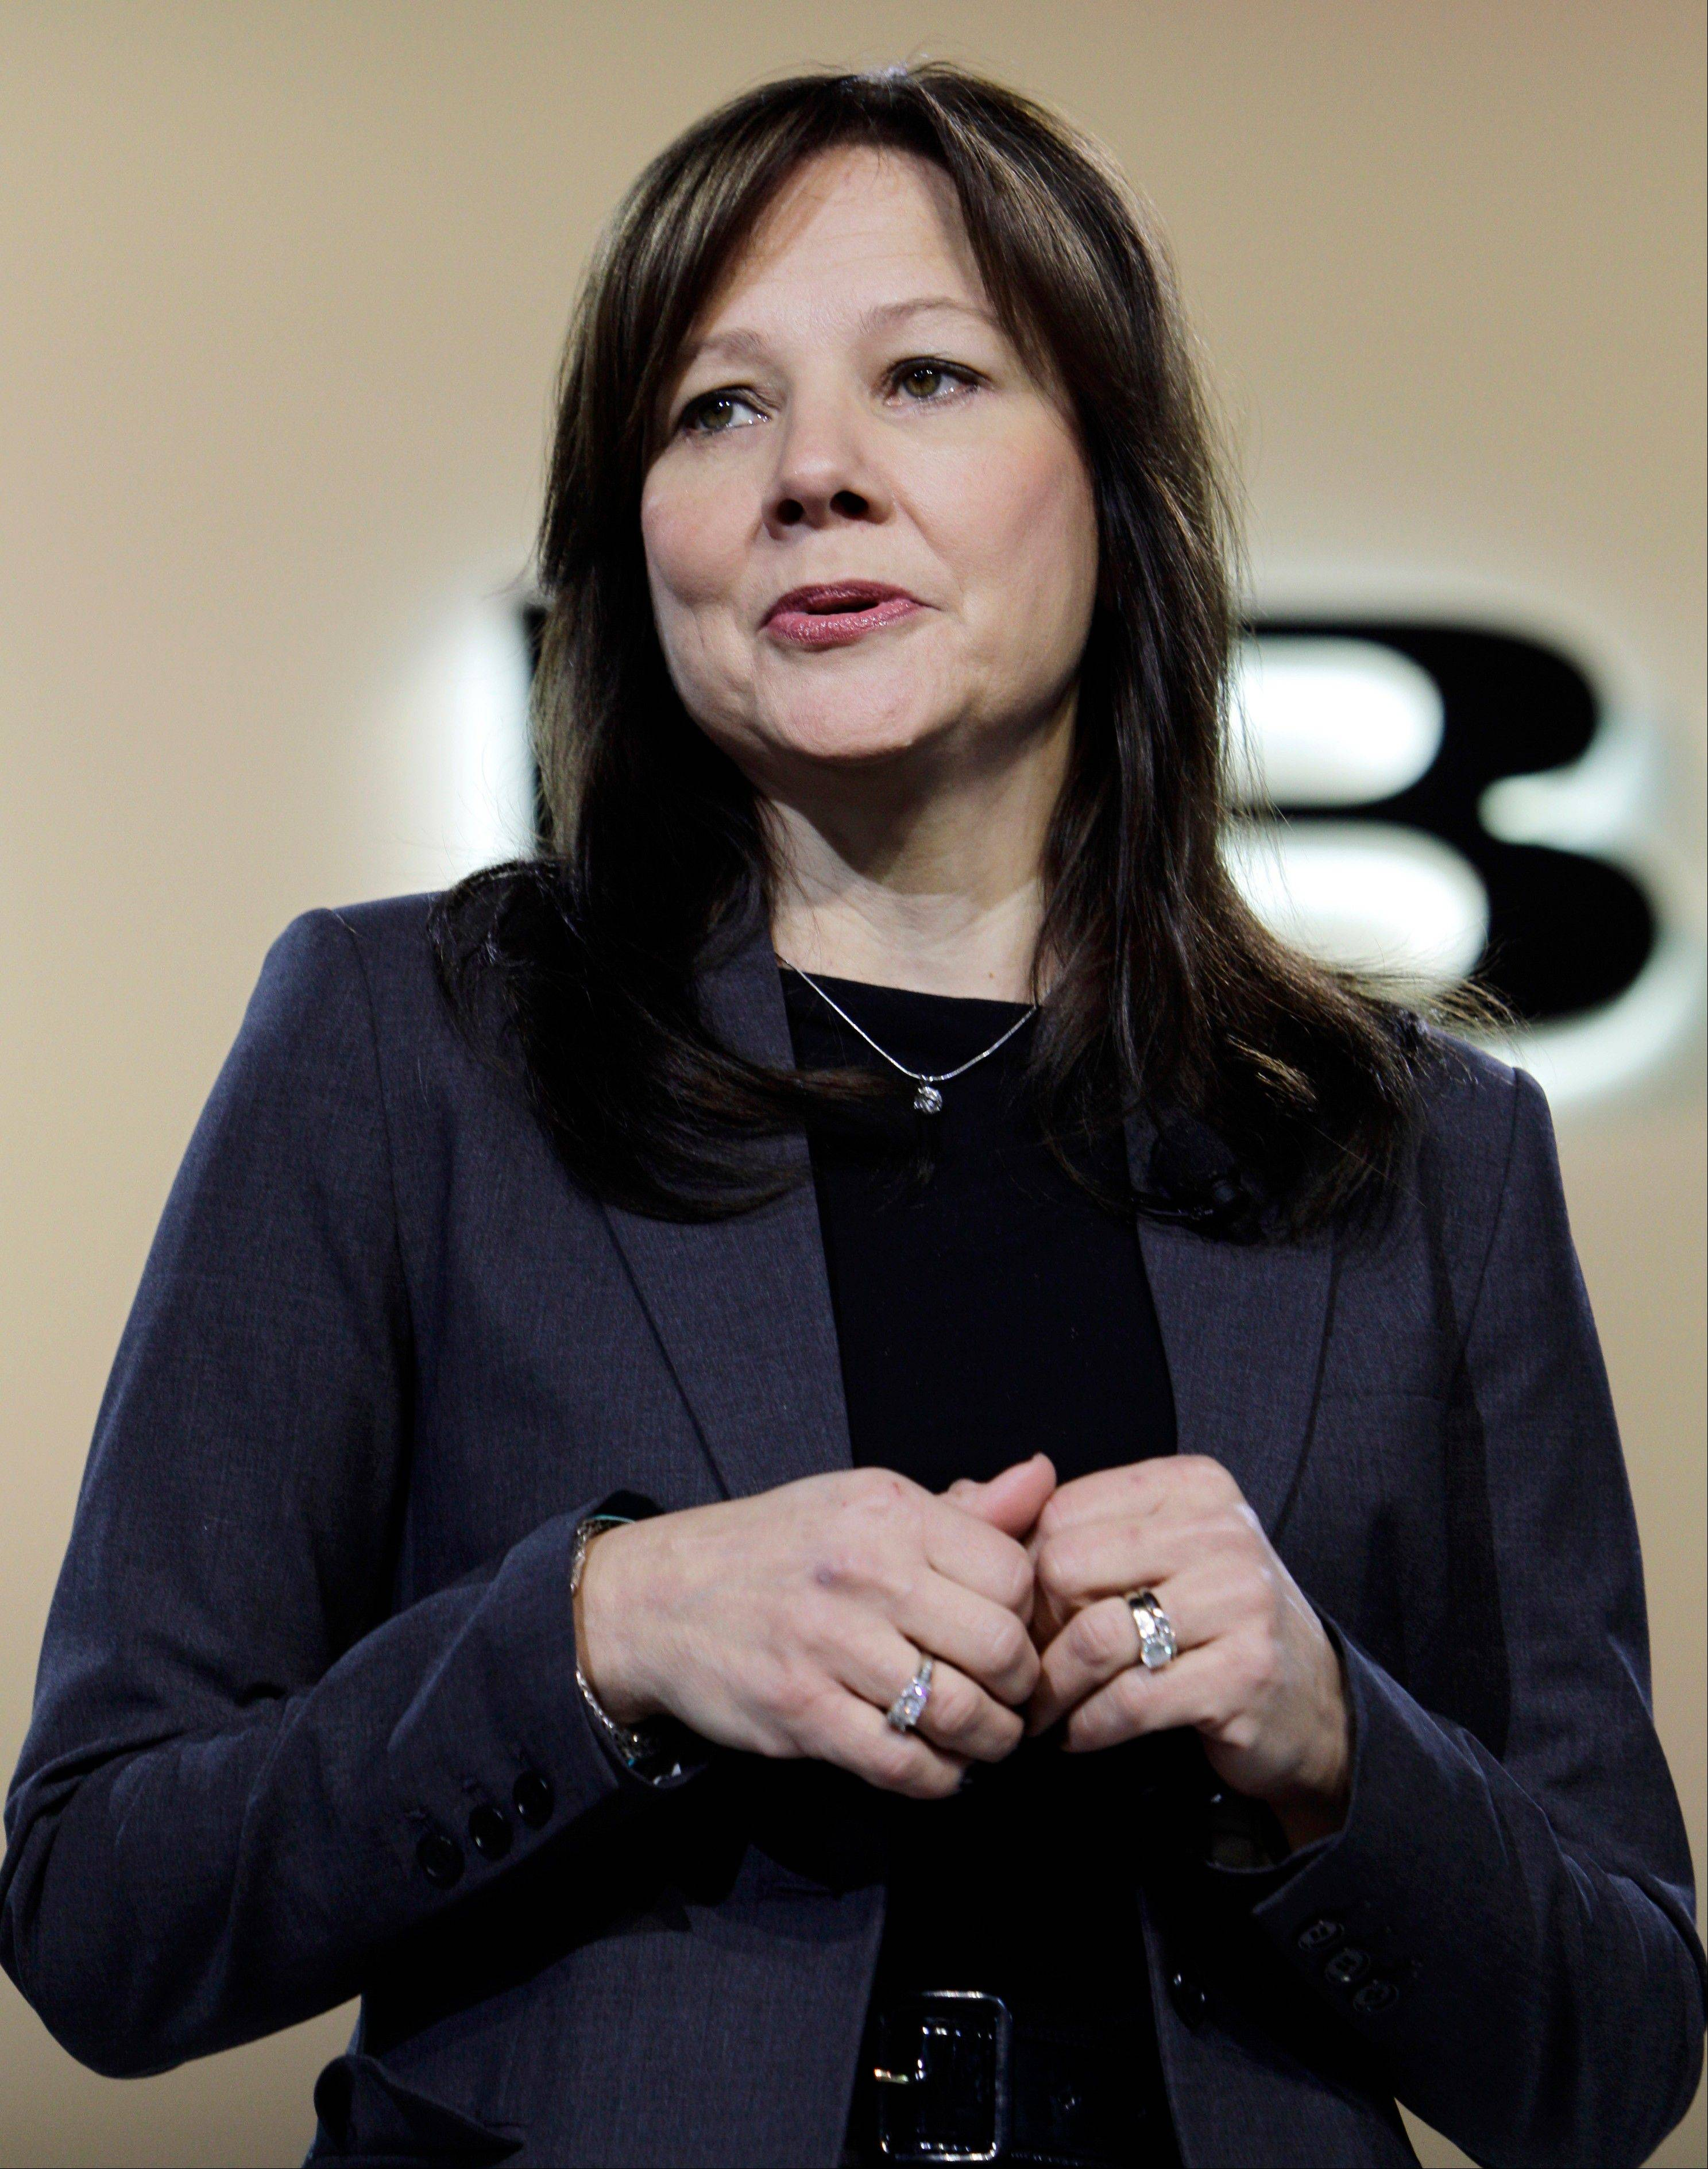 Mary Barra, formerly General Motors' senior vice president, Global Product Development, will be the company's next CEO.